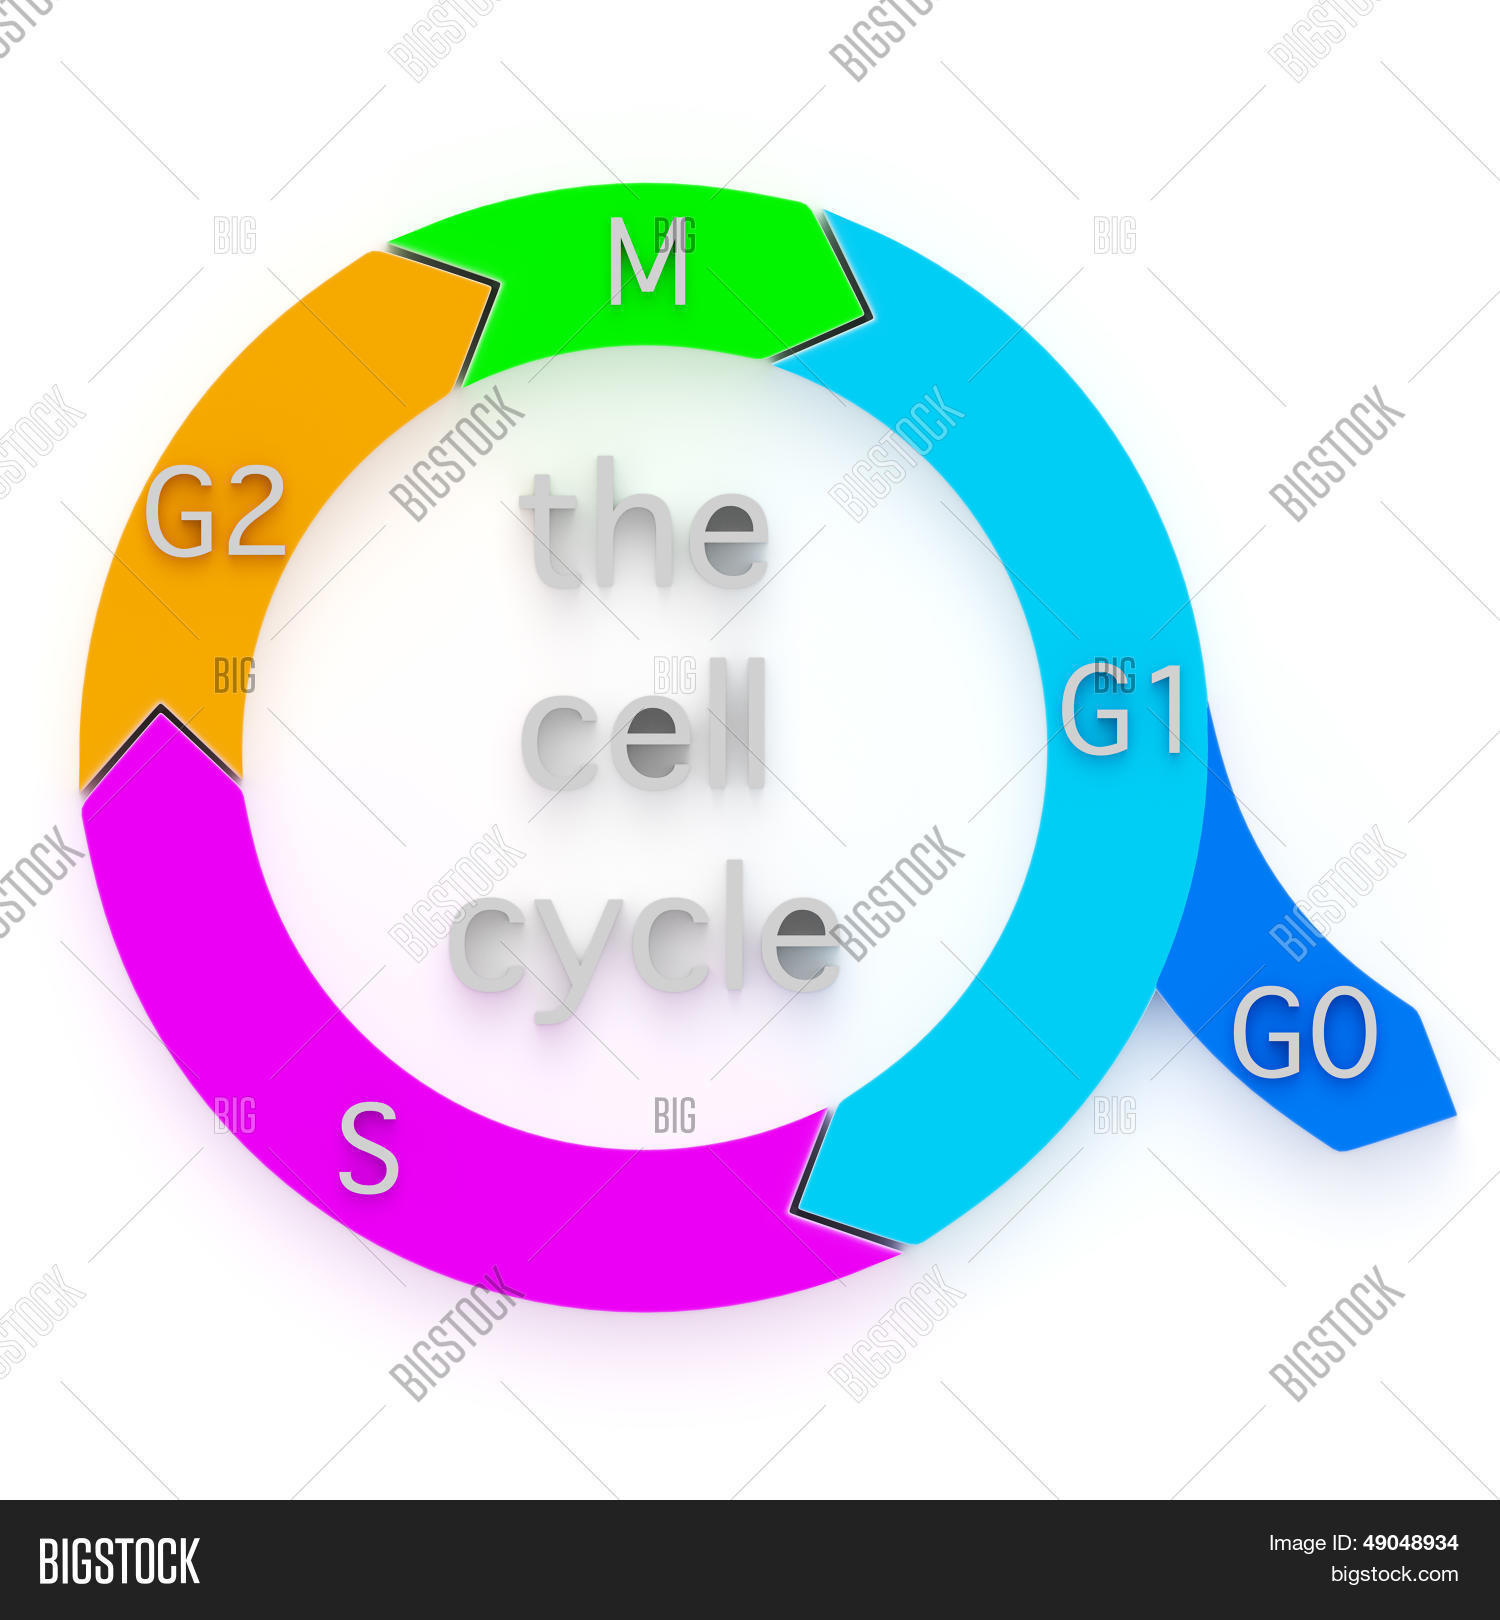 Diagram Of Cell Cycle Diagram Cell Cycle Image Photo Free Trial Bigstock